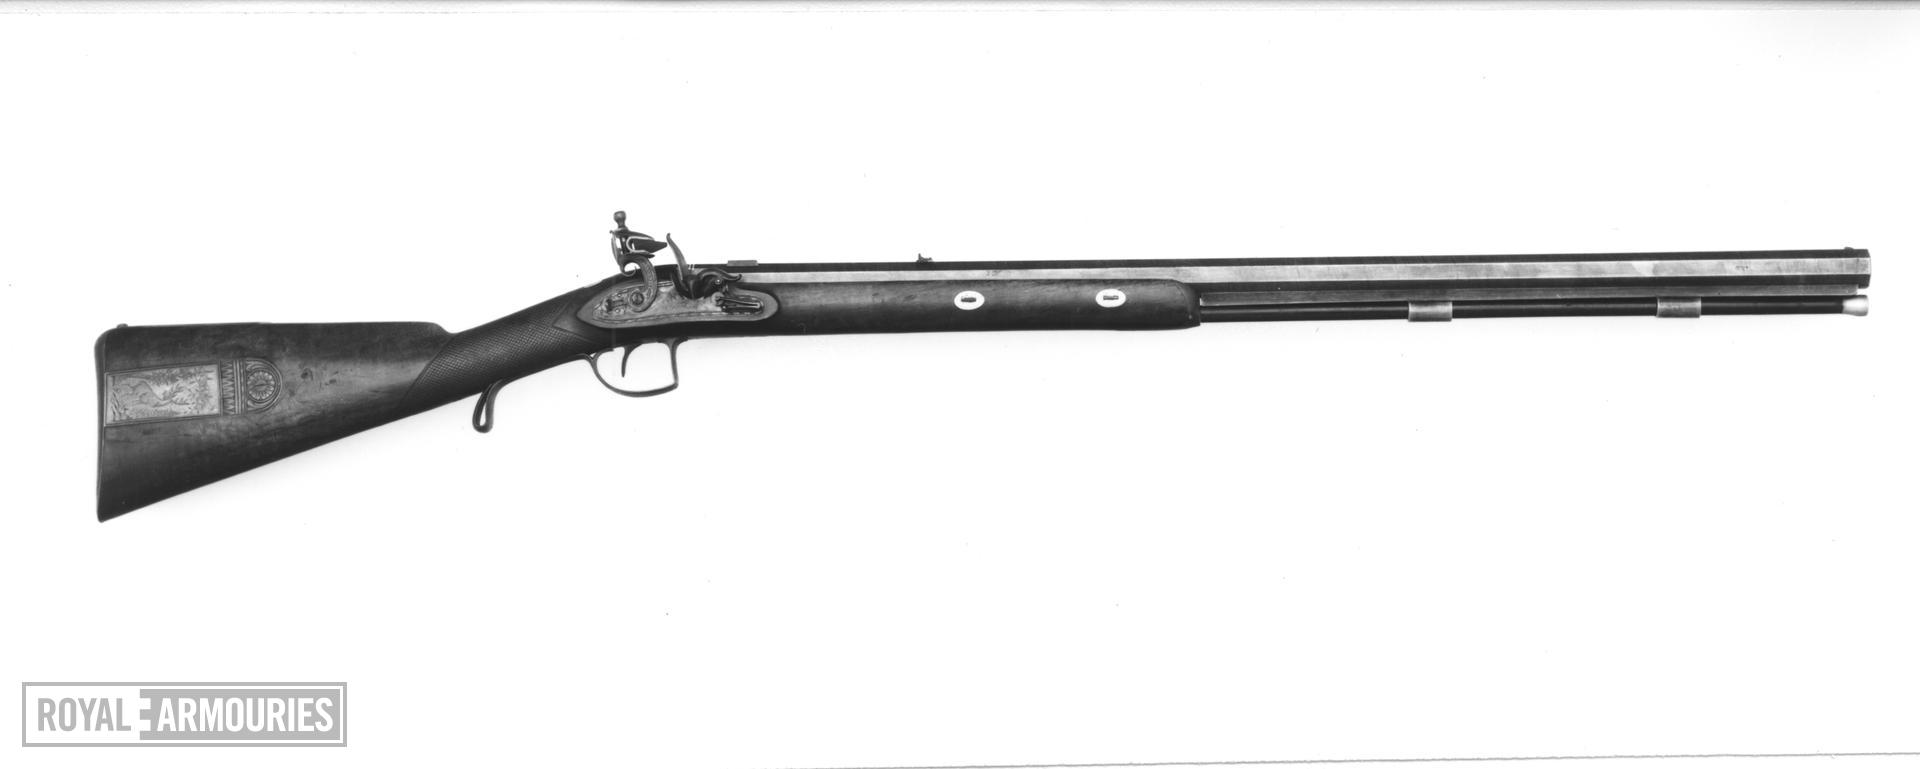 Flintlock muzzle-loading presentation rifle - By Tatham